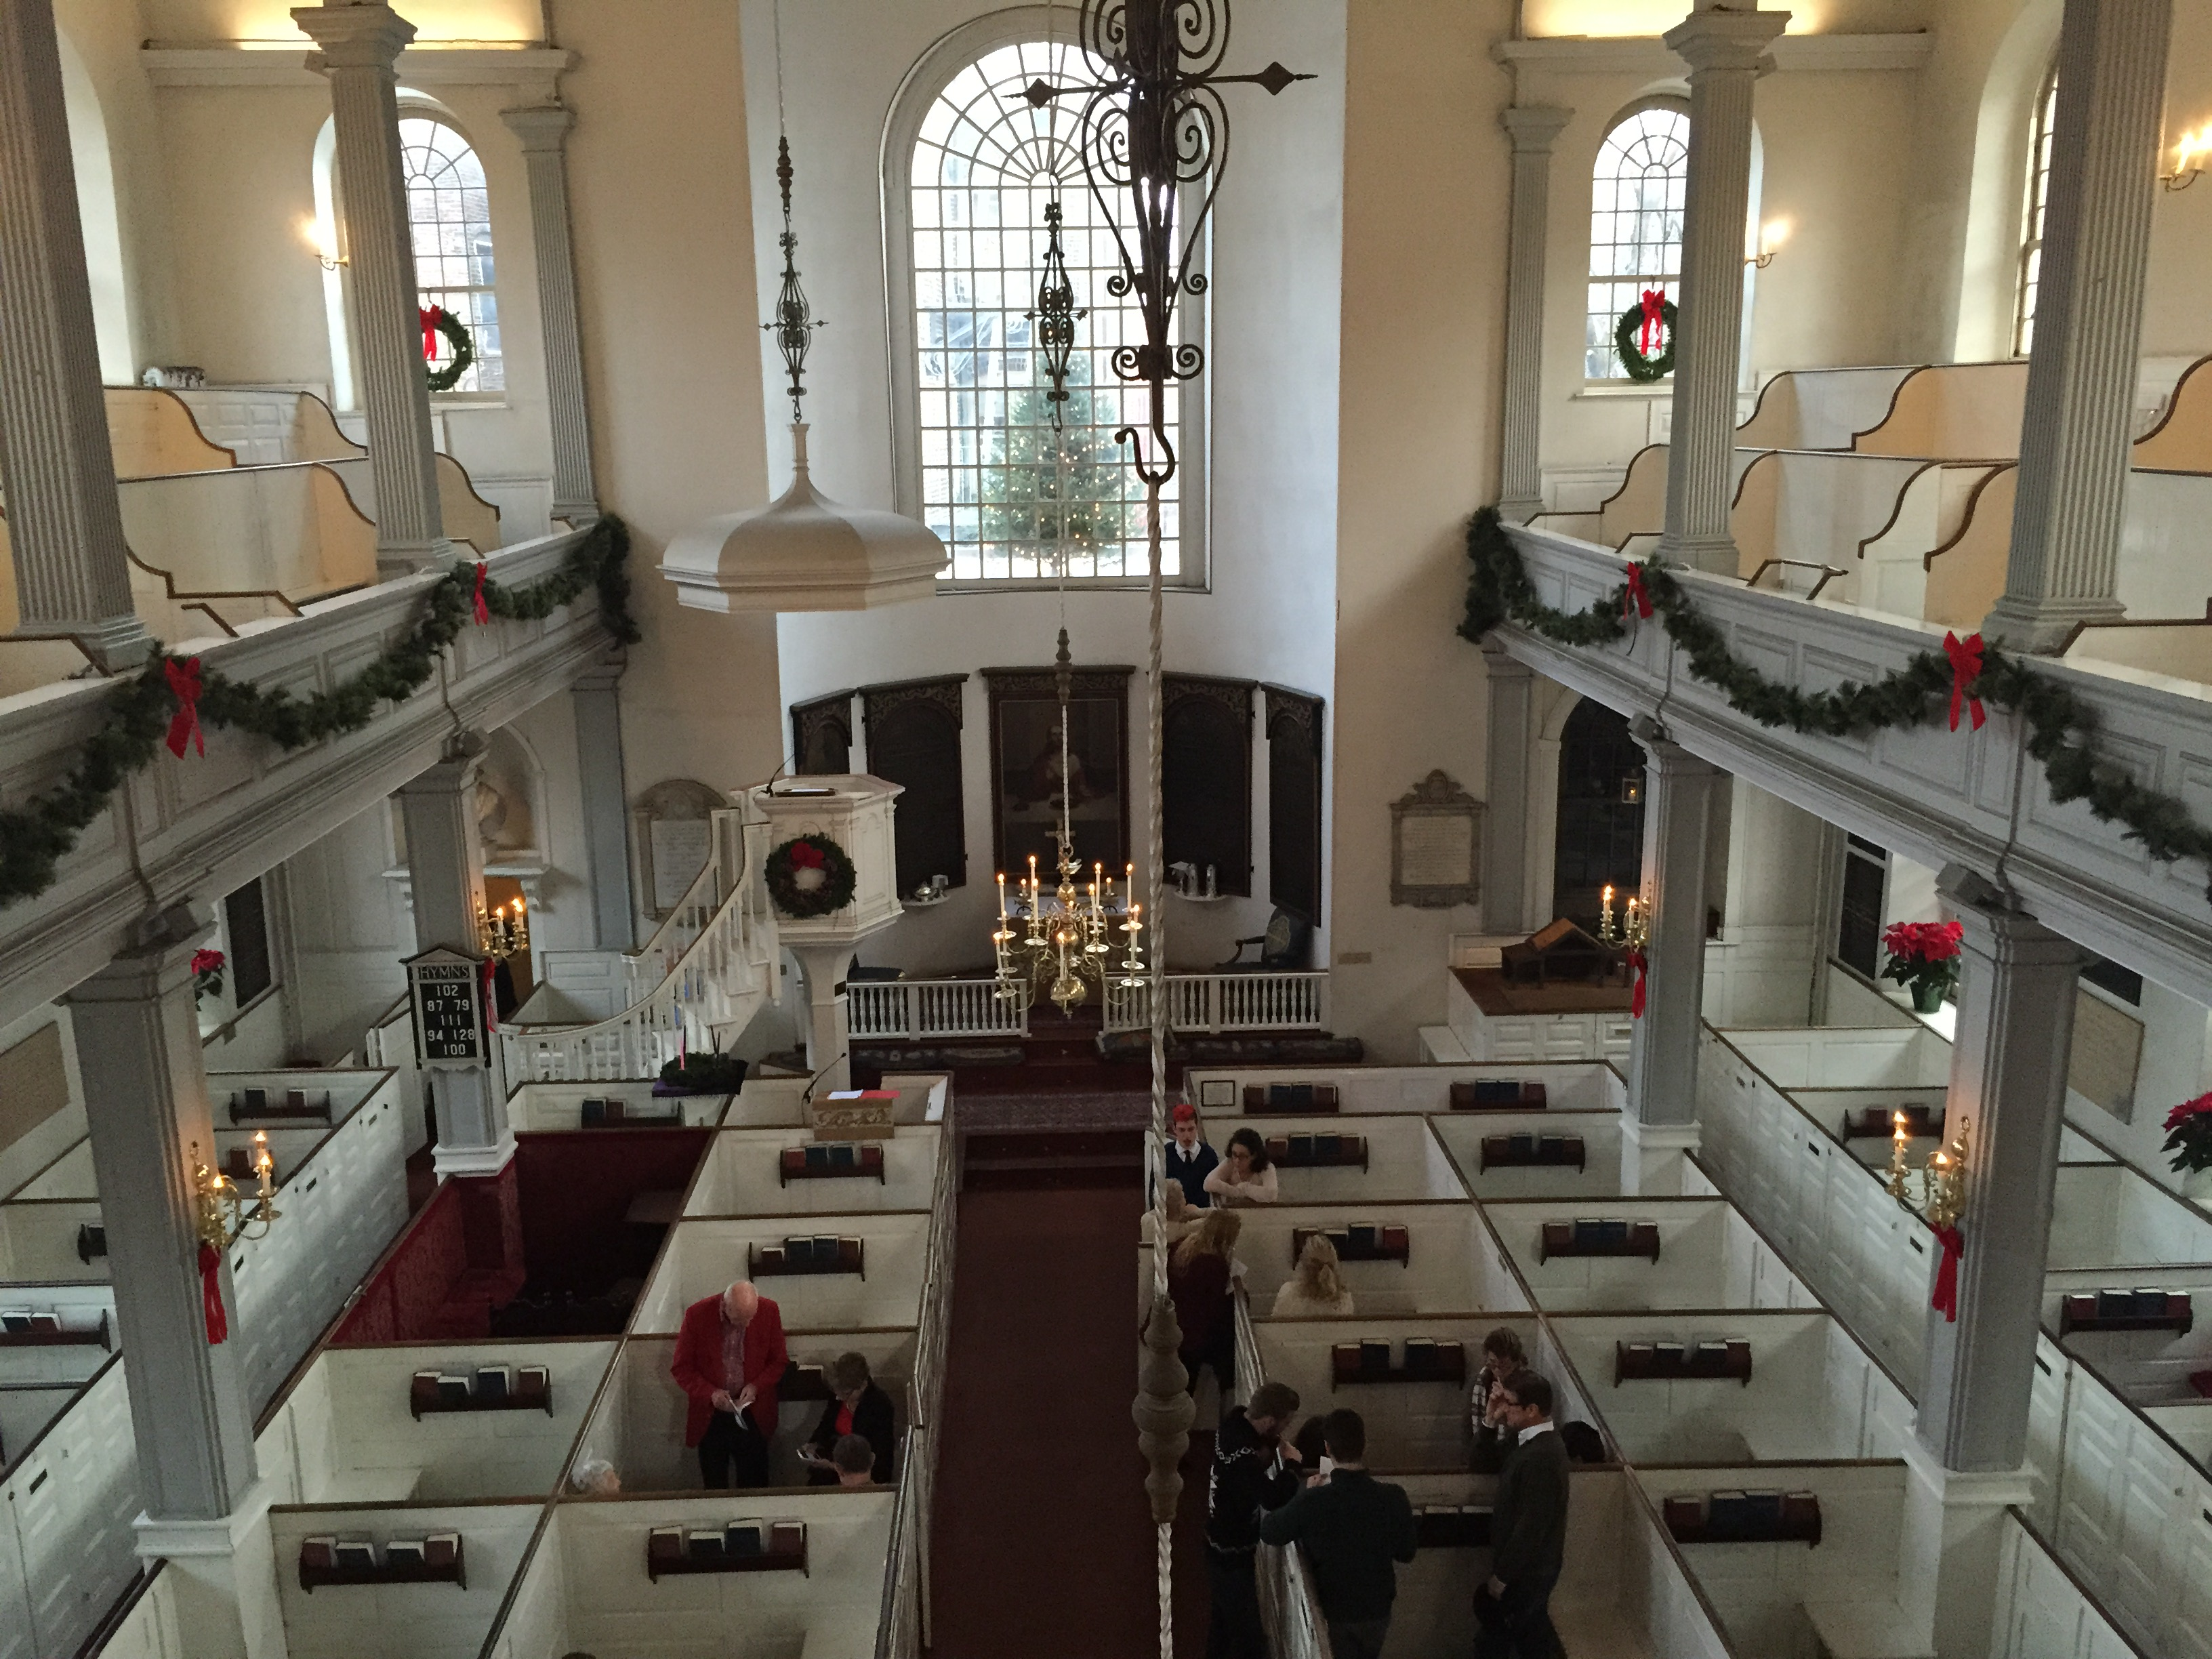 Christmas Worship at the Old North Church - NorthEndWaterfront.com